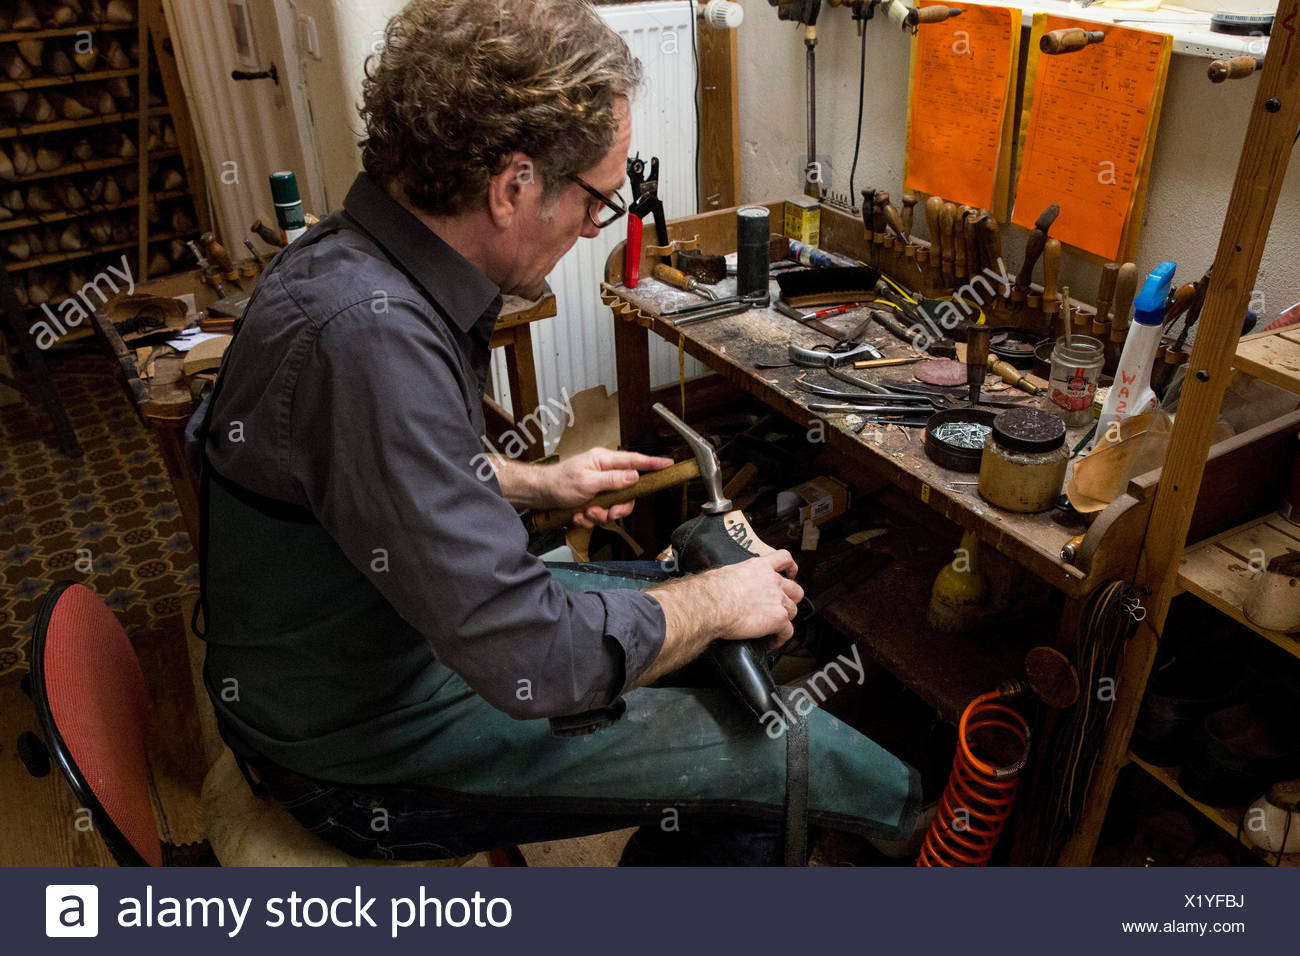 Occupational report with shoemaker Klemann Shoes: Champion Benjamin Klemann - Stock Image